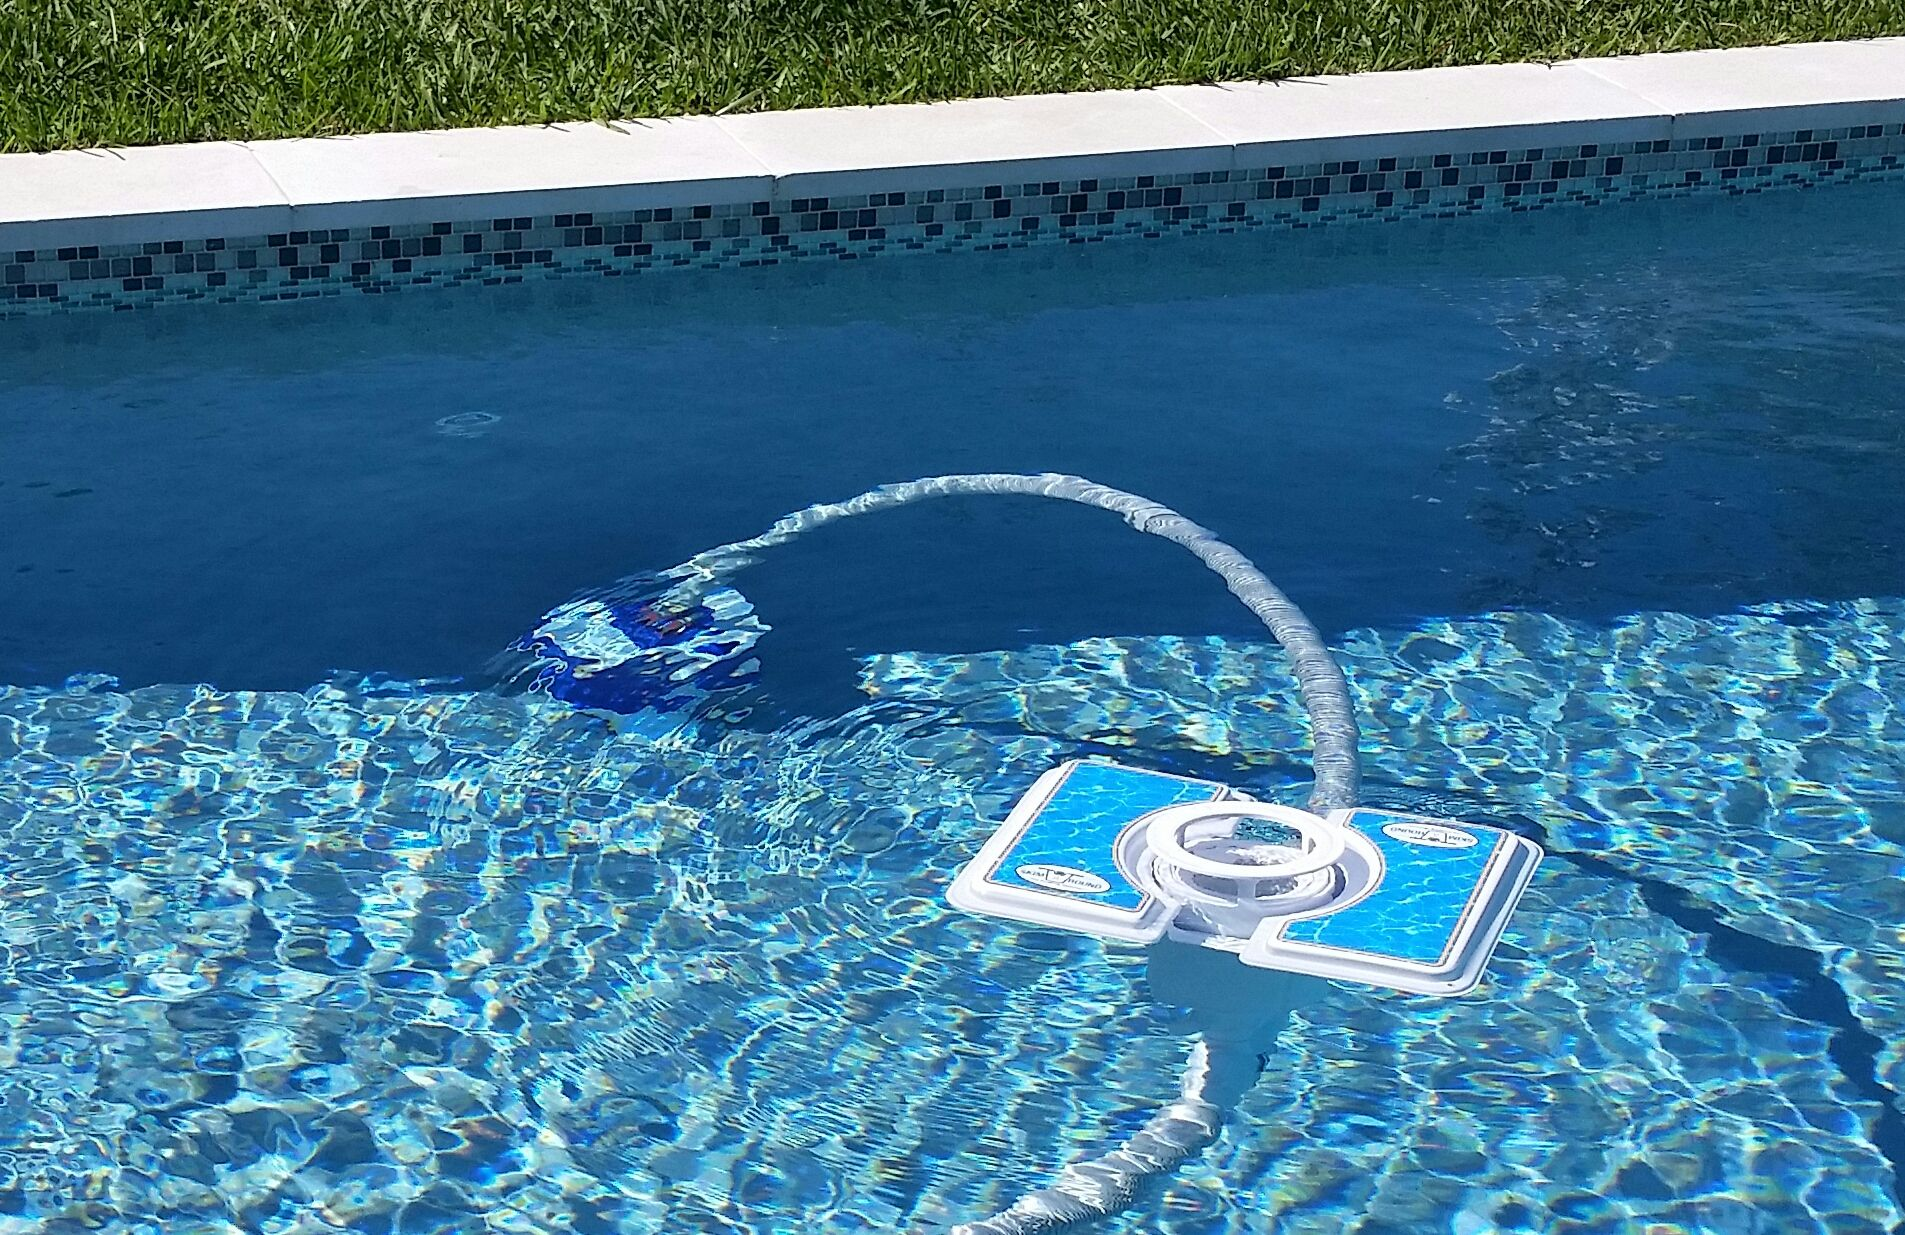 A Moving Pool Skimmer Attach The Skim A Round Moving Pool Skimmer To Your Existing Pool Vacuum And Watch It Move Around Th Pool Skimmer Diy Pool Pool Vacuum